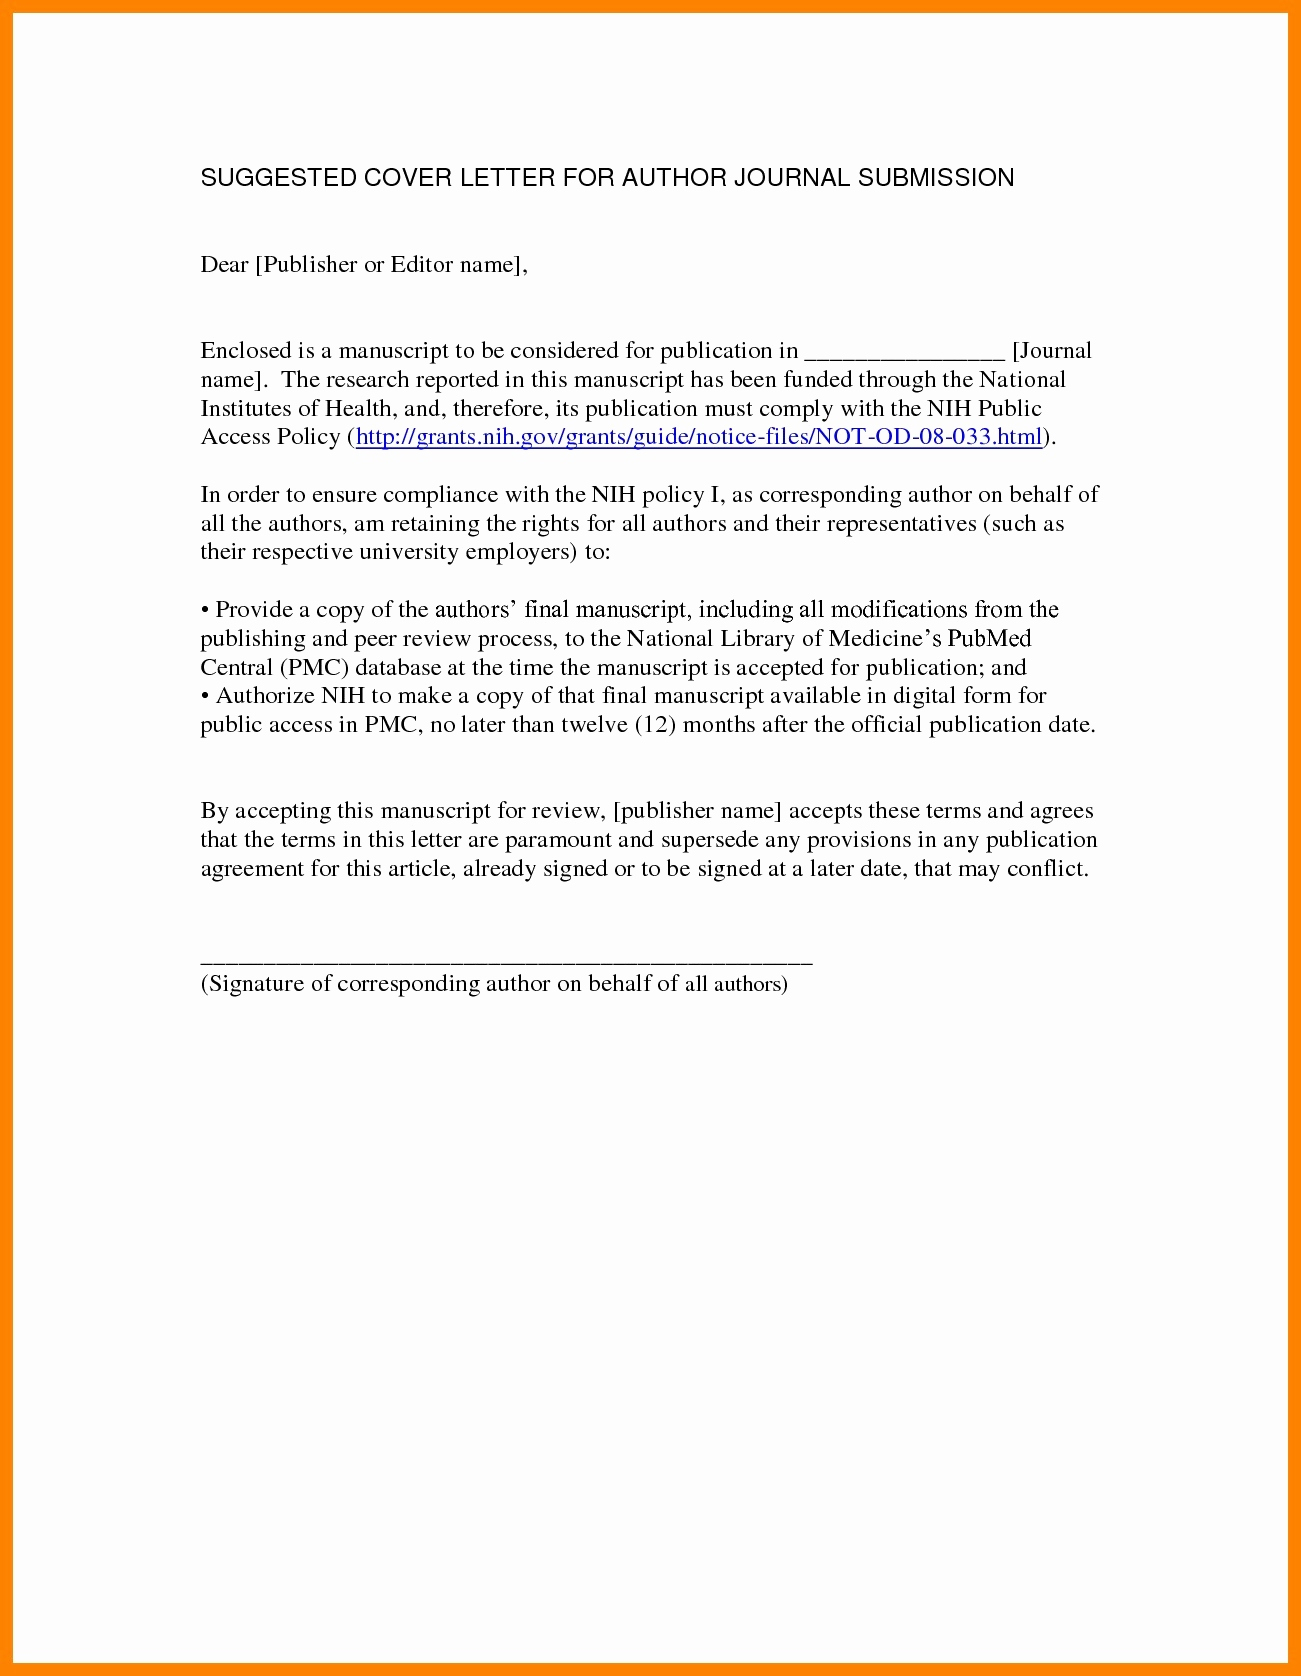 side letter agreement template example-Side Letter Agreement Template New Medical Director Contract Template Luxury Personal Agreement 20-d